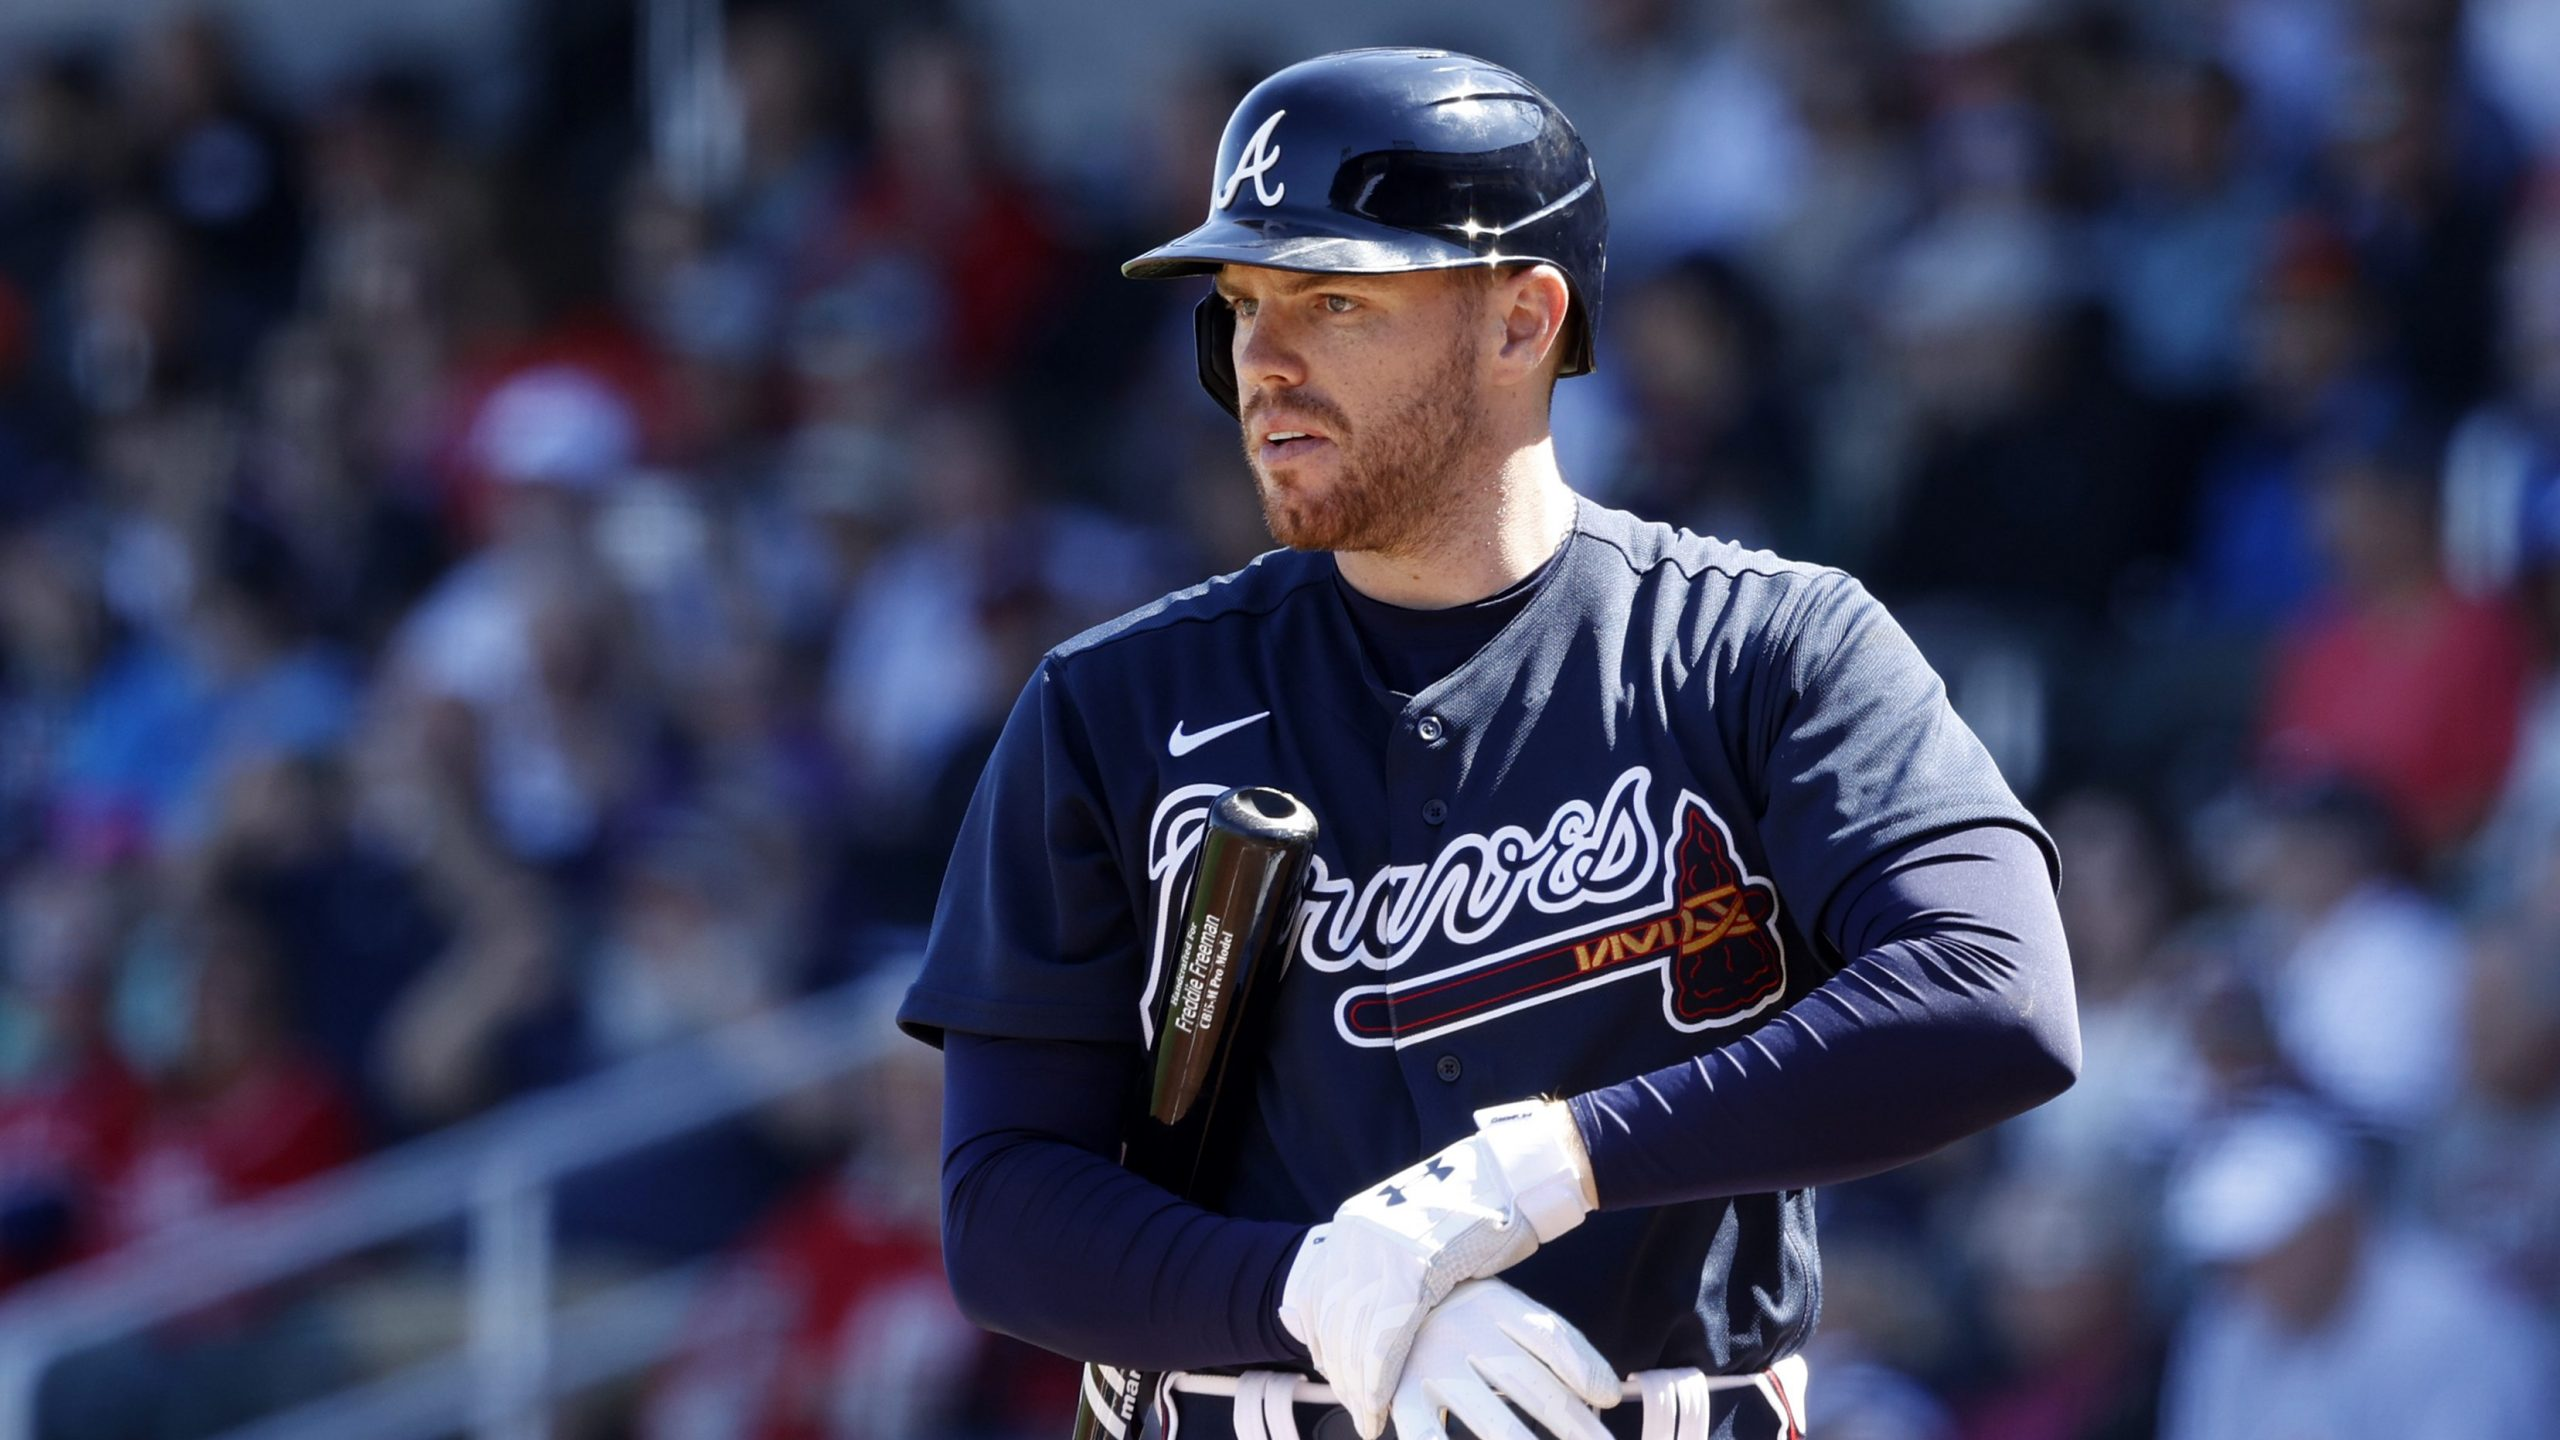 4 Atlanta Braves Players Test Positive for Covid-19